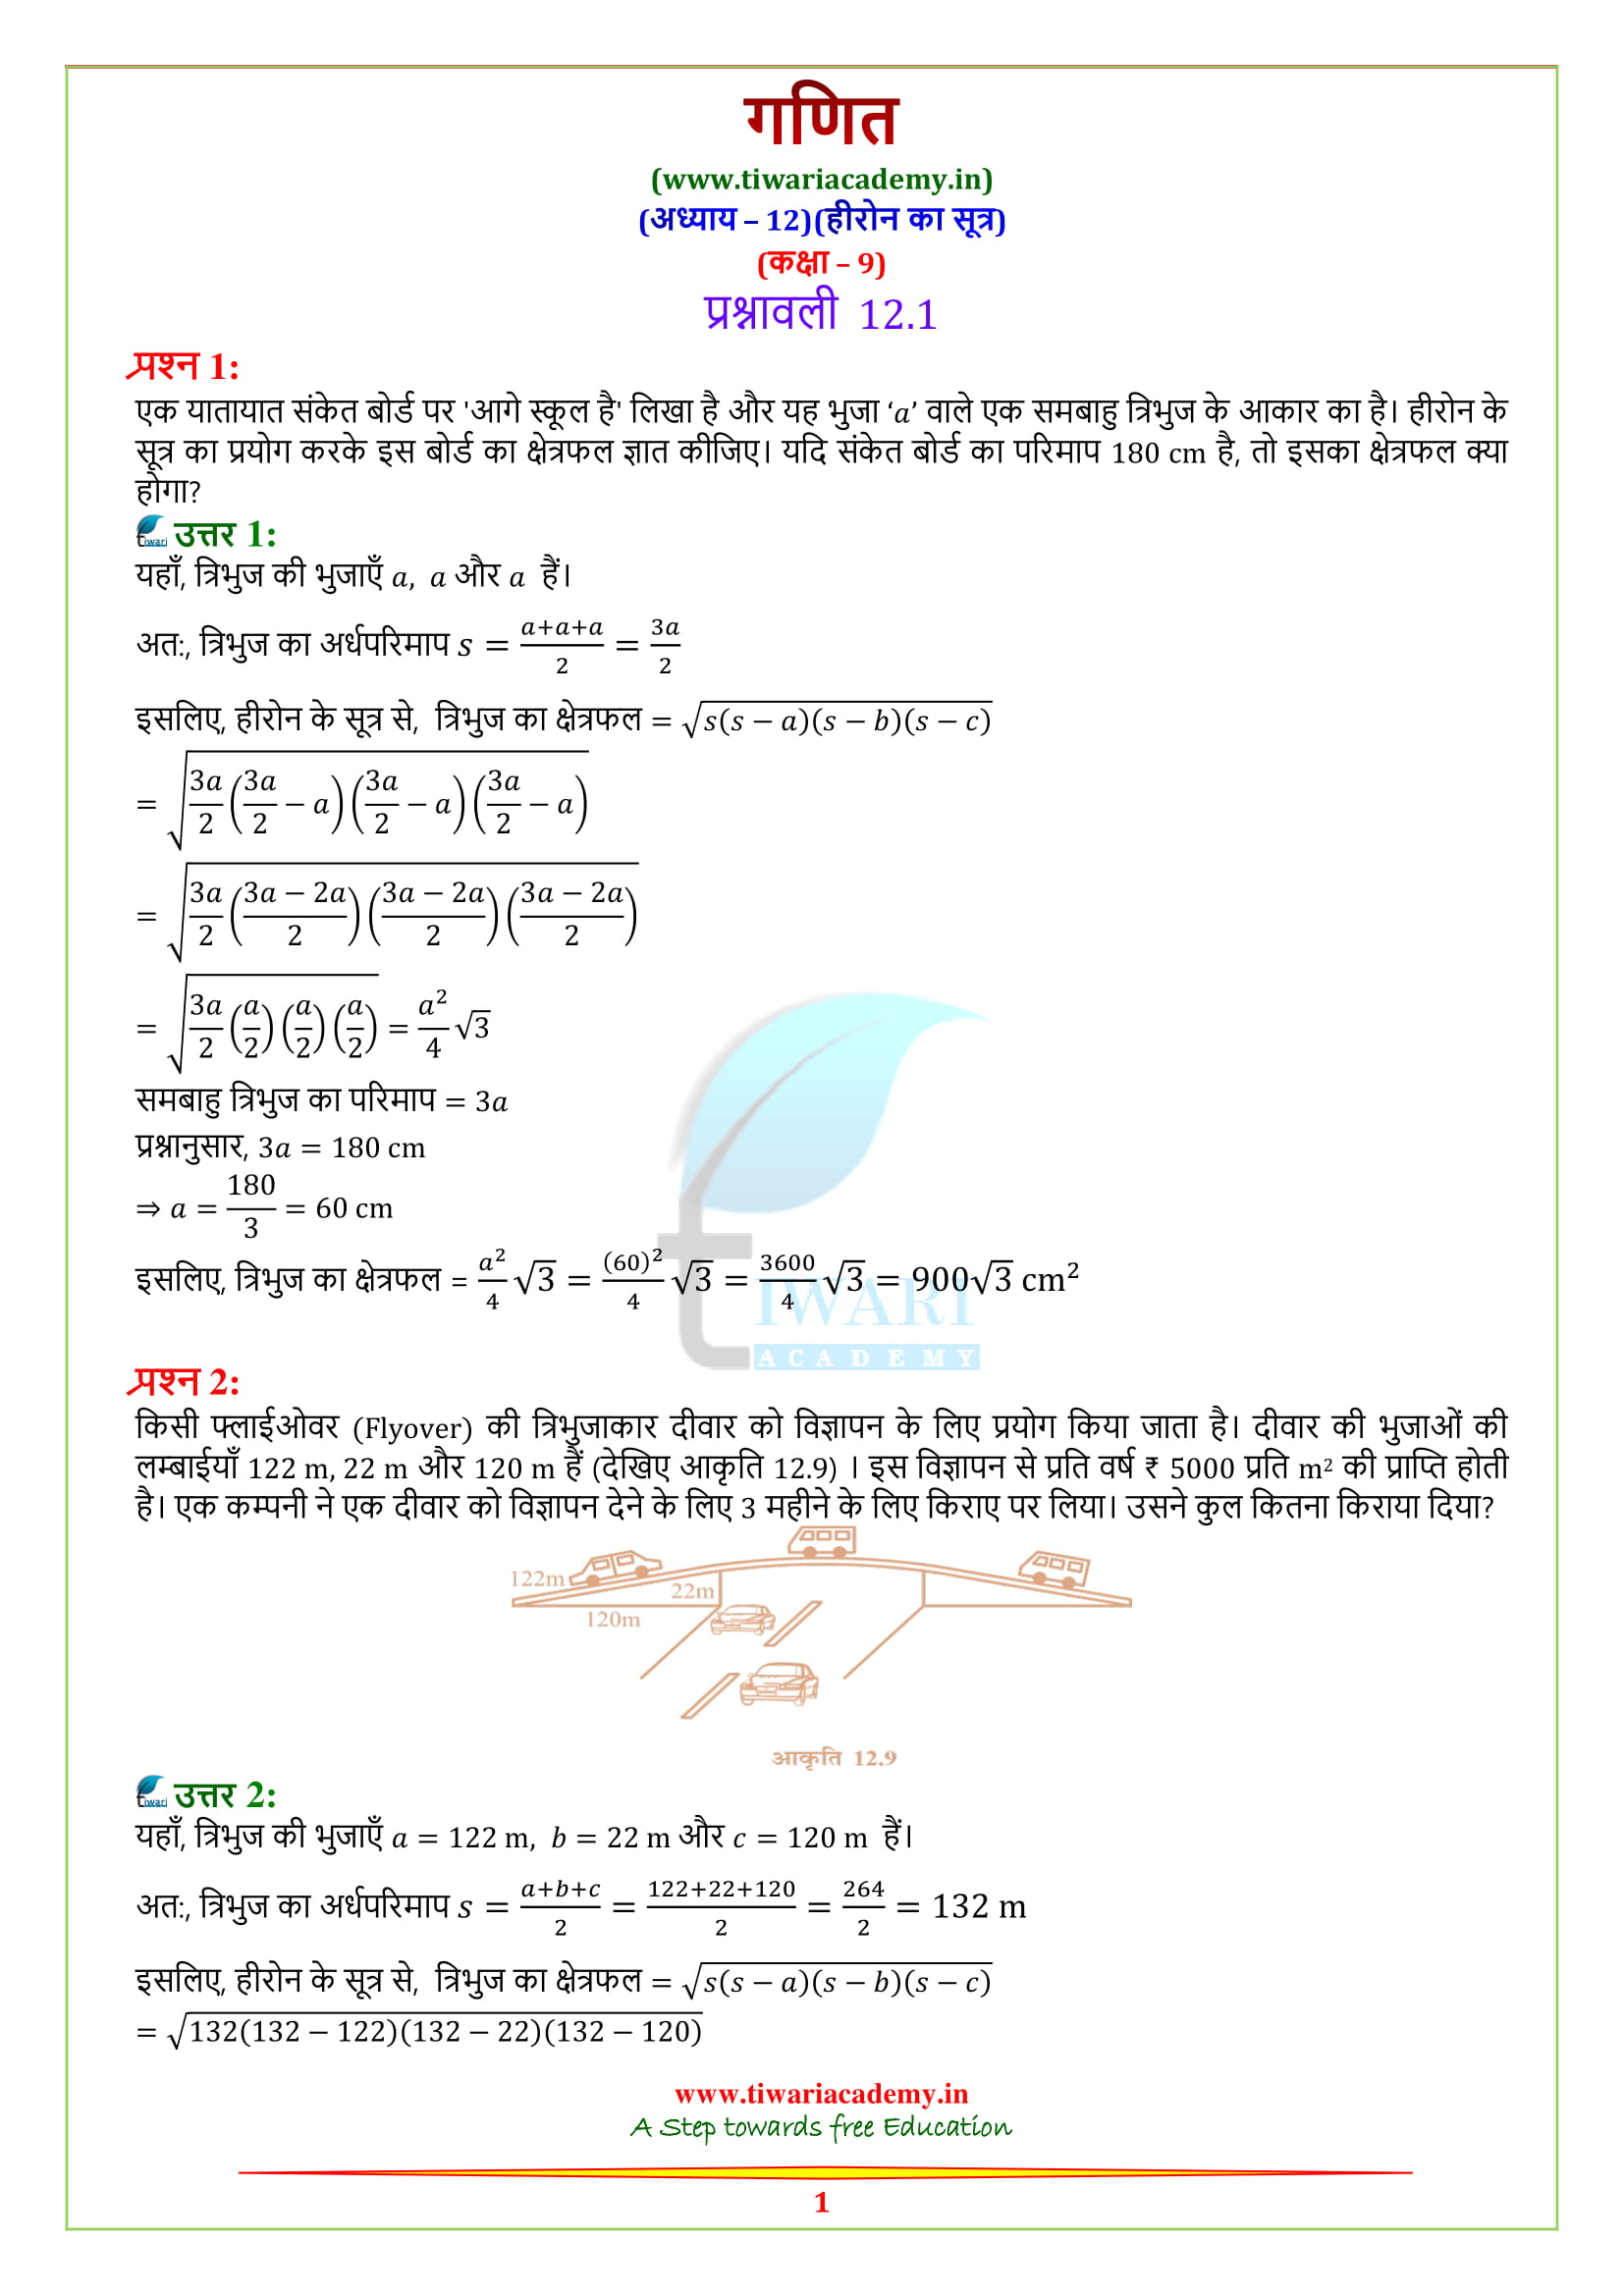 9 Maths Exercise 12.1 solutions all question answers in hindi